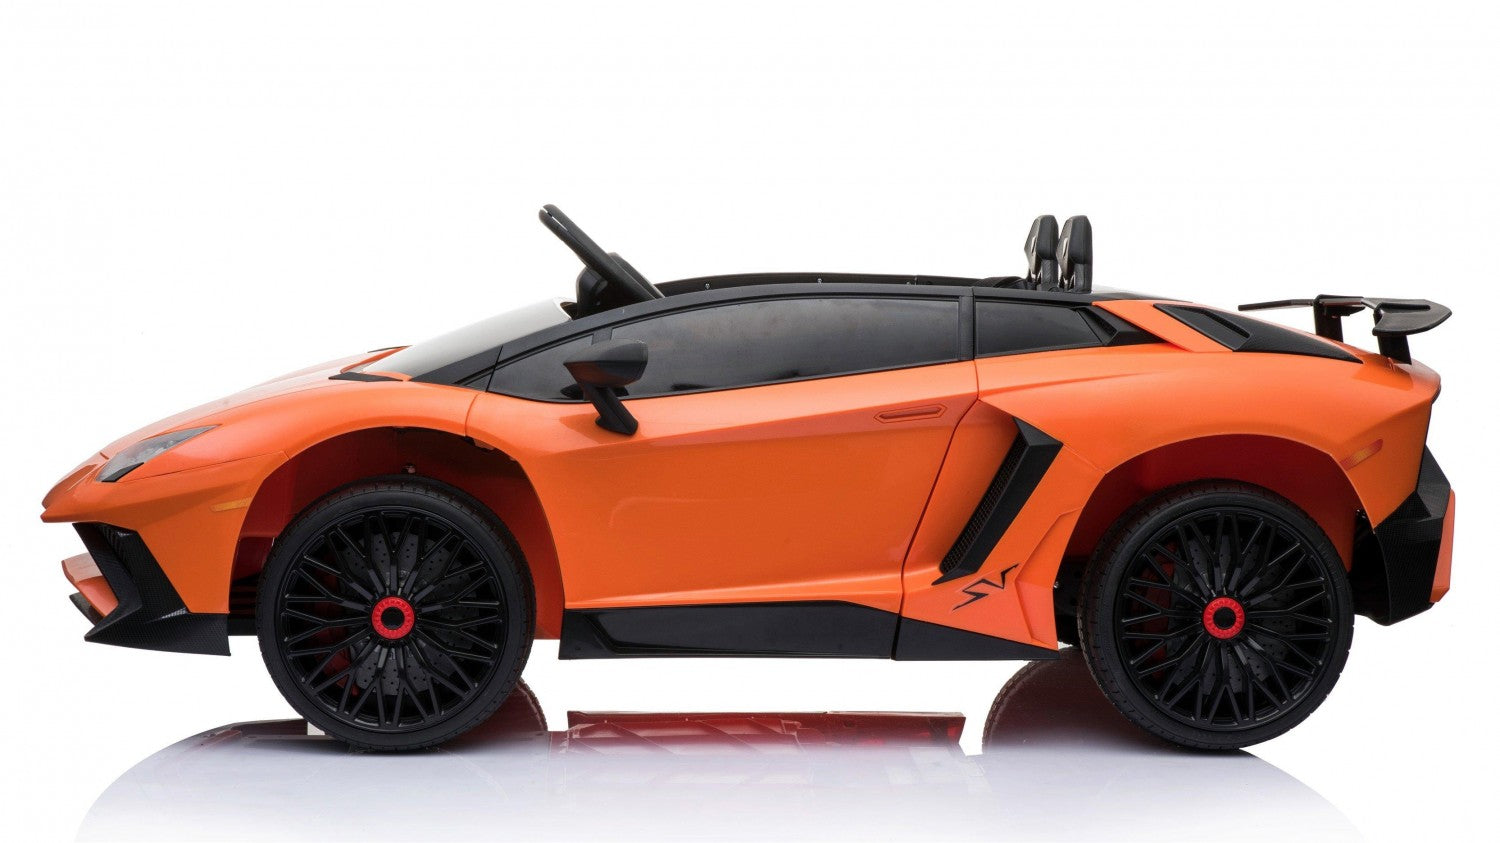 Lamborghini Aventador SV 12V Ride on Car With Remote - Orange